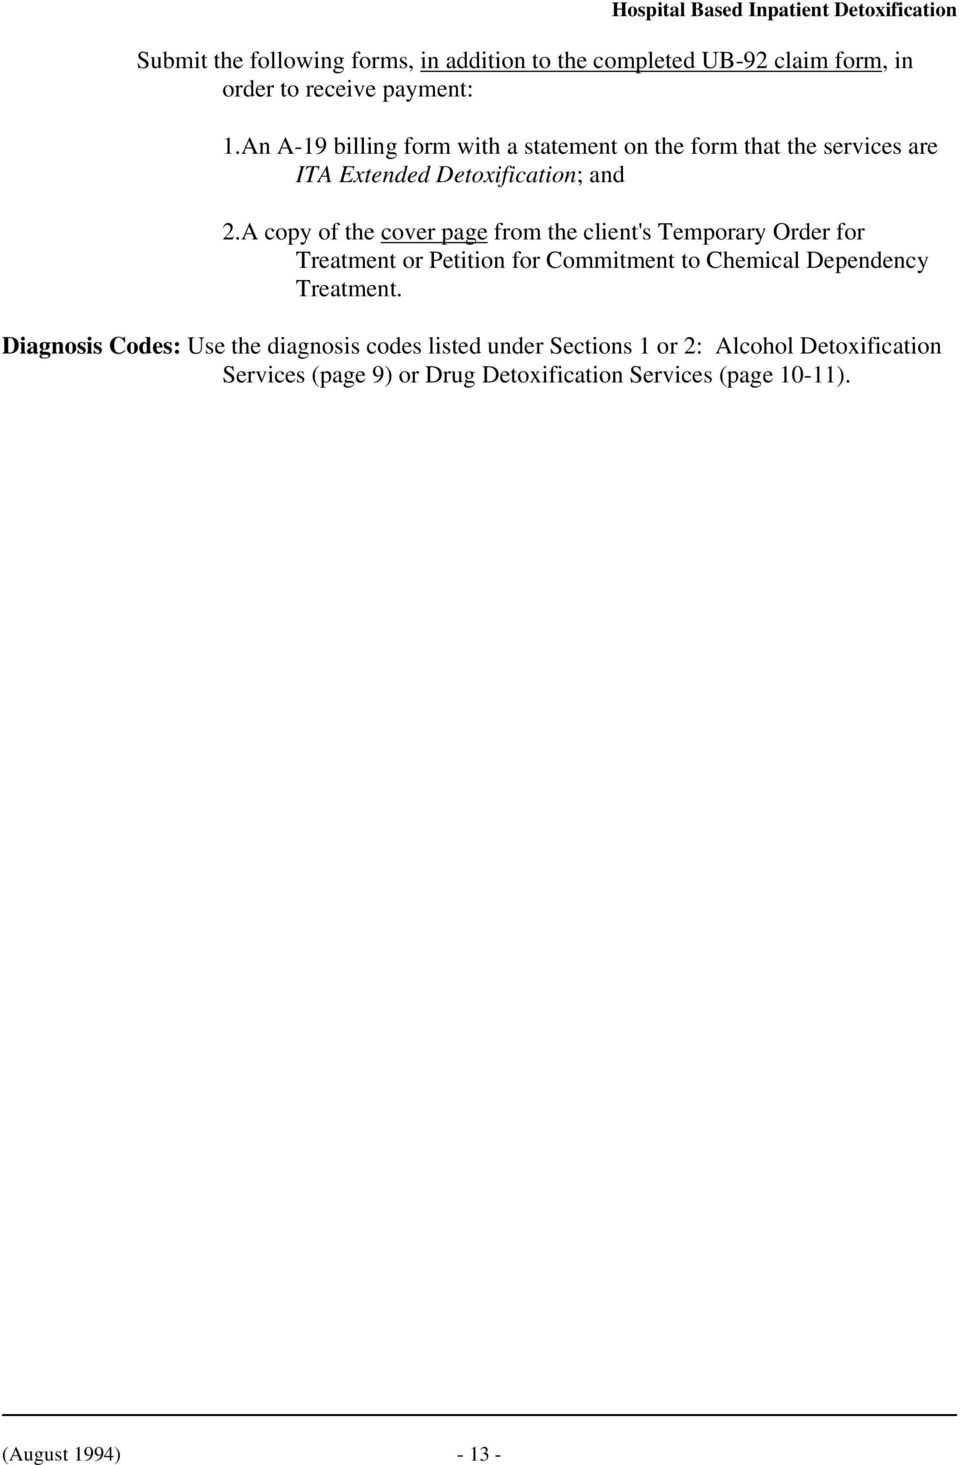 A copy of the cover page from the client's Temporary Order for Treatment or Petition for Commitment to Chemical Dependency